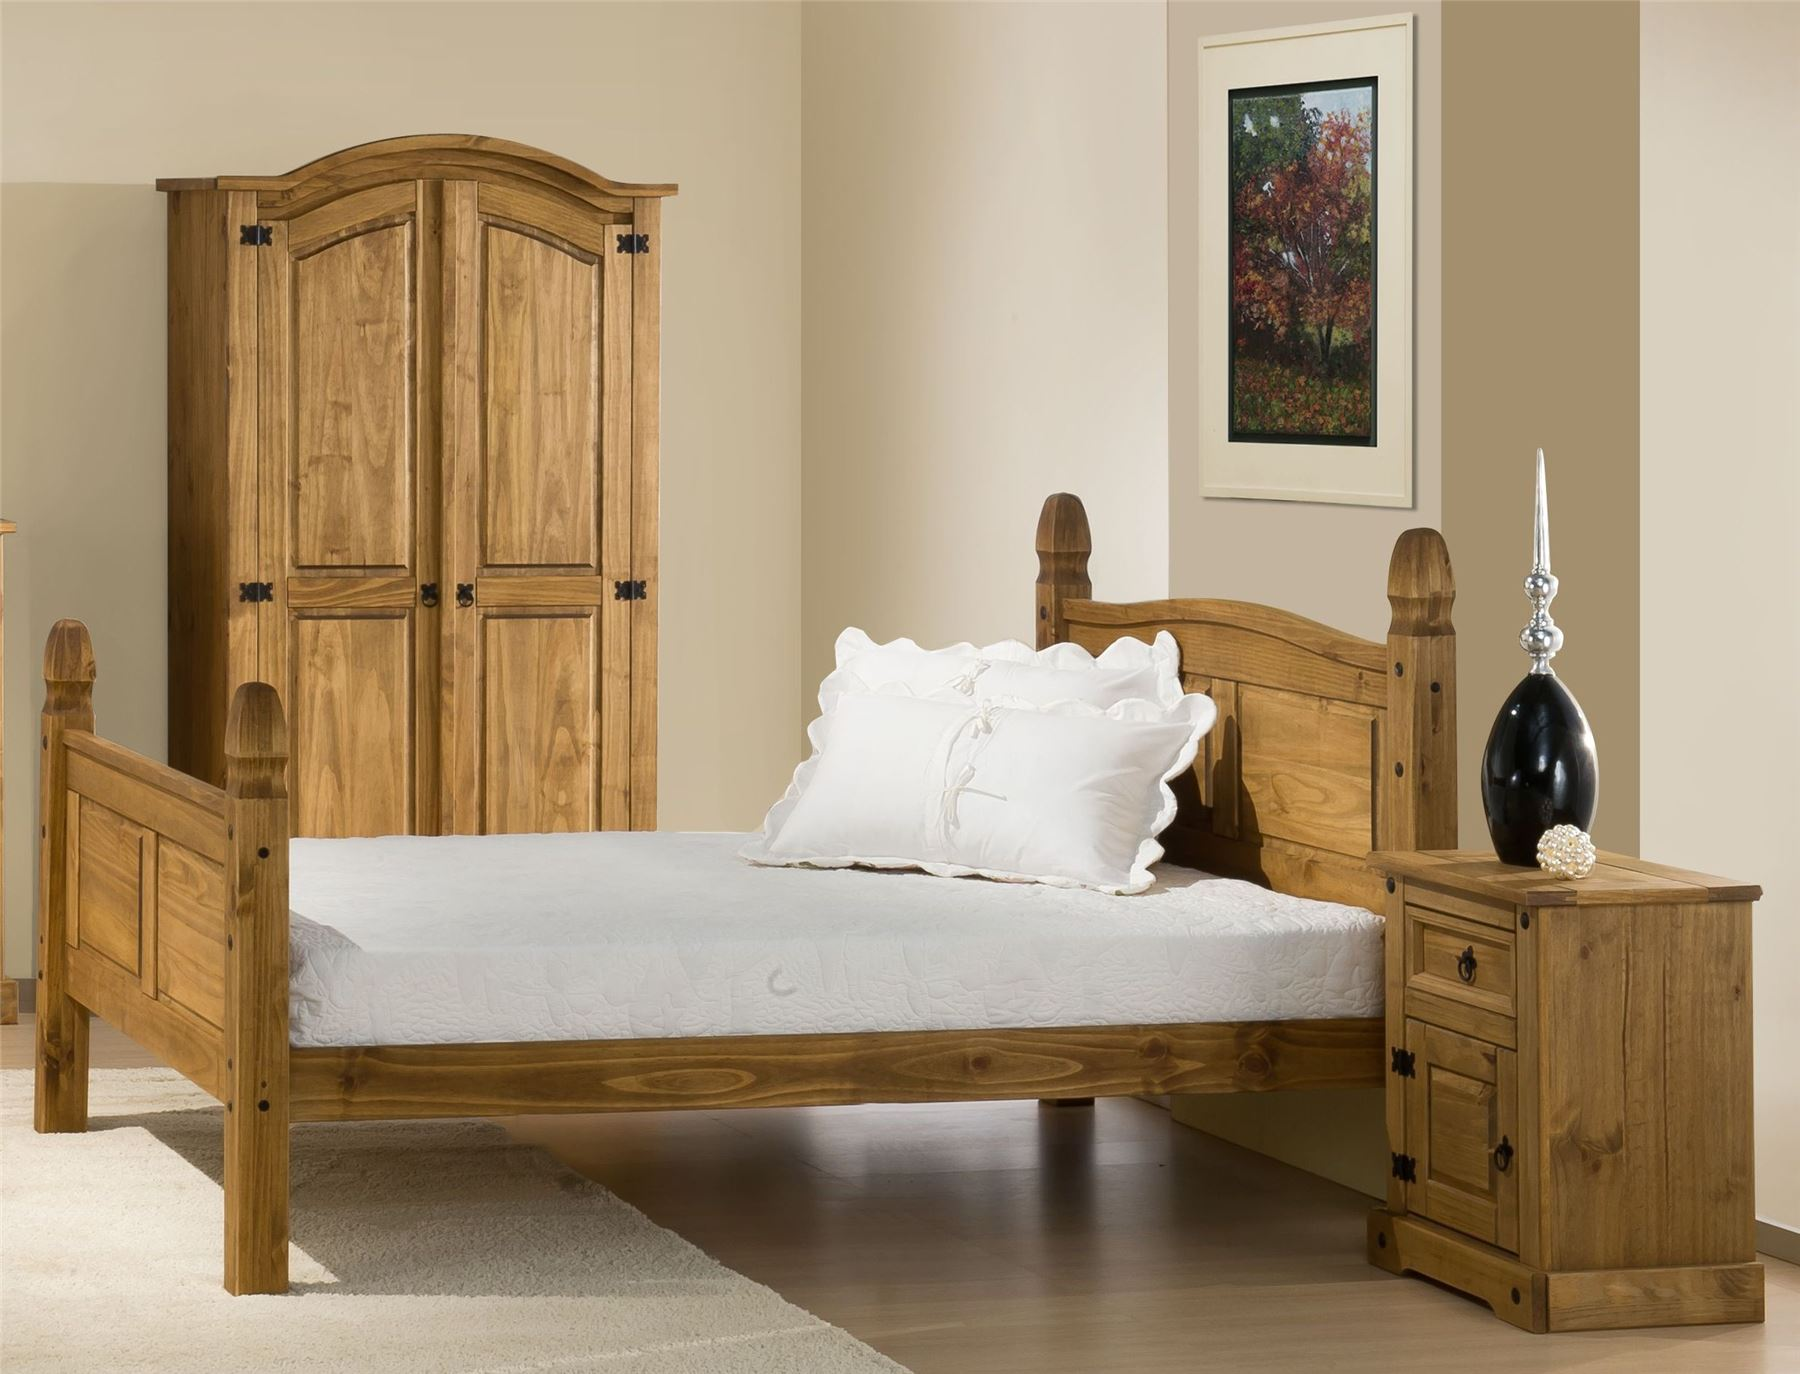 Corona Mexican Solid Pine High Foot End 150cm Bedstead 5'0'' kingsize bed Frame